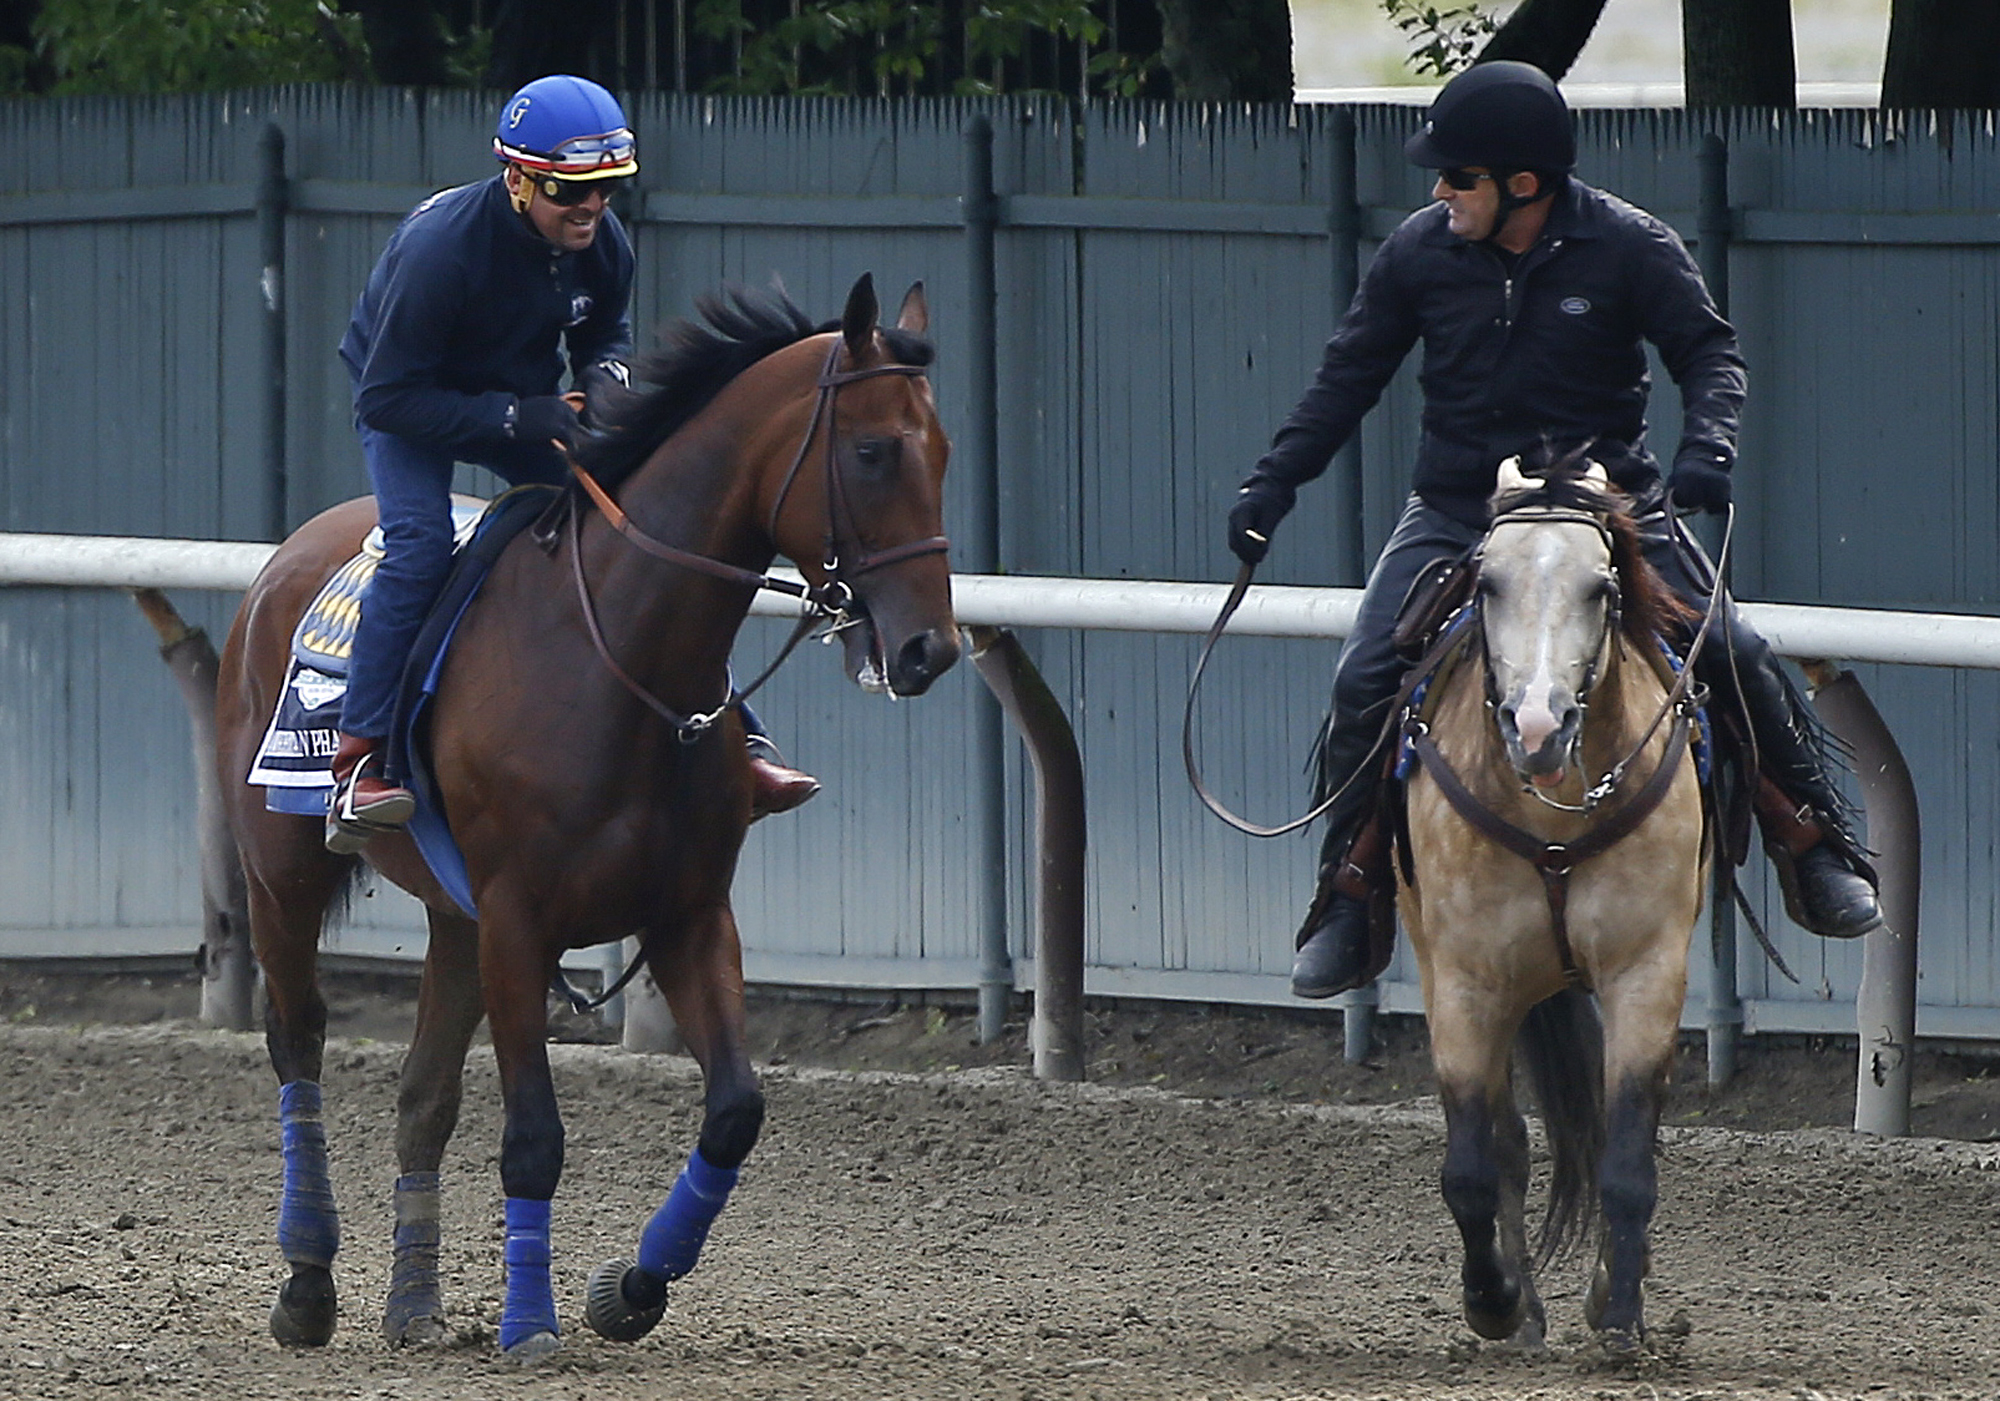 Kentucky Derby and Preakness Stakes winner American Pharoah, left, with exercise rider Jorge Alvarez up, is met by assistant trainer Jimmy Barnes on a pony, after jogging around the track at Belmont Park, Wednesday, June 3, 2015, in Elmont, N.Y. American